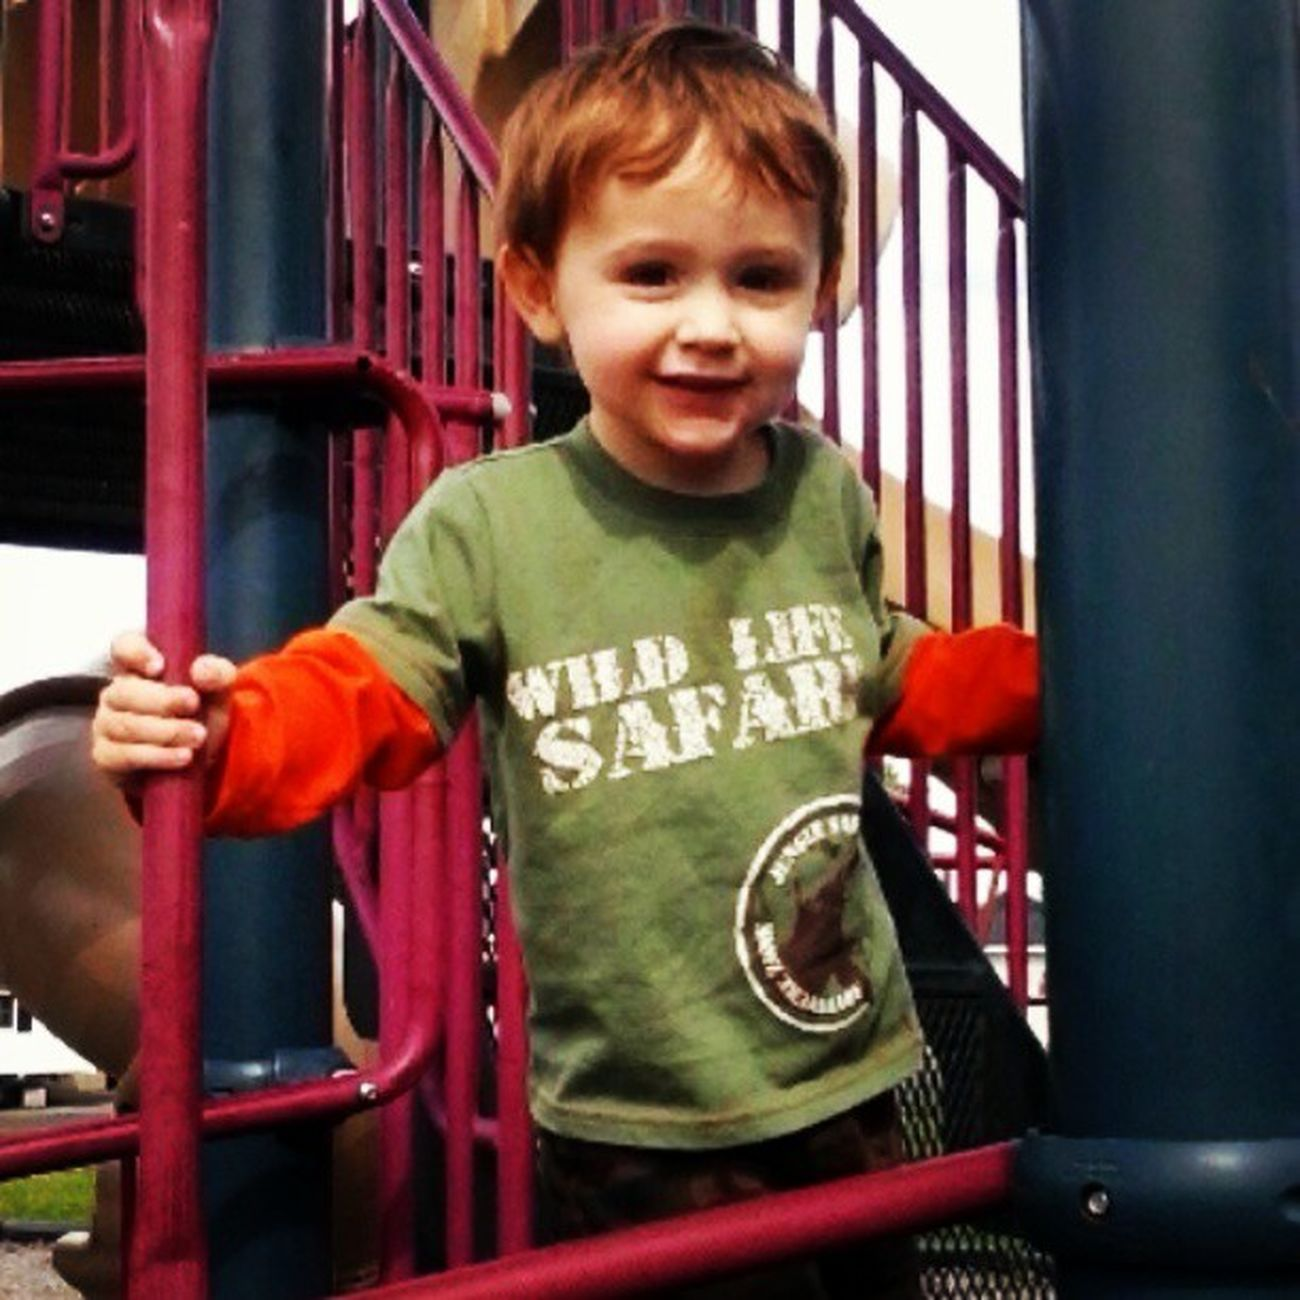 Cutestkidever Mylove Ginger Playground photooftheday cutestbabyever